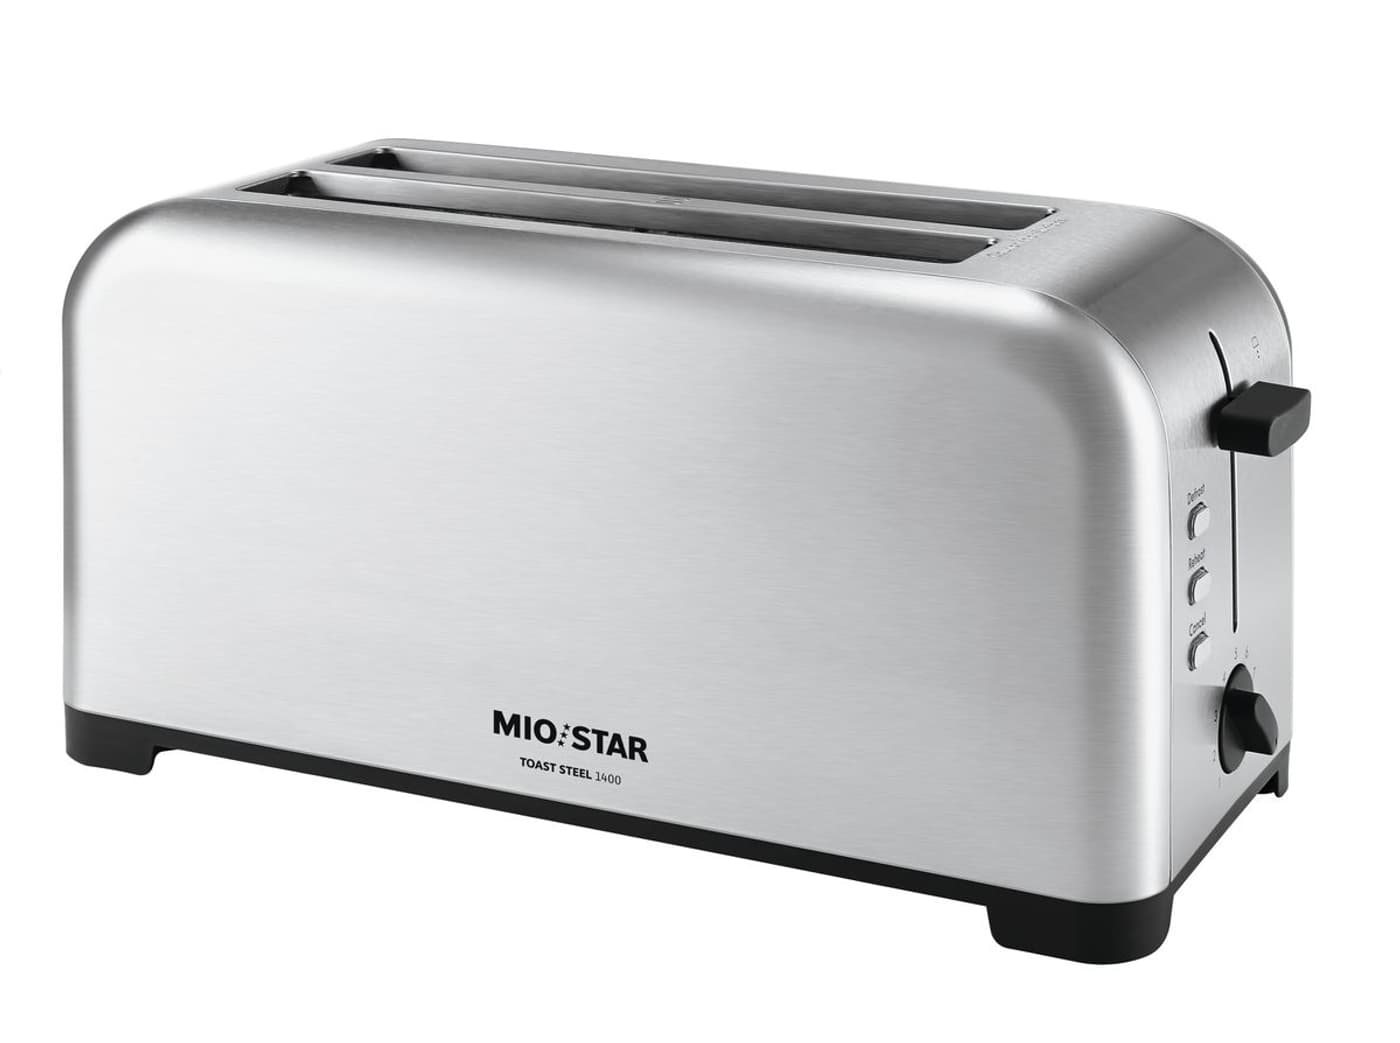 mio star toast steel 1400 4 scheiben toaster migros. Black Bedroom Furniture Sets. Home Design Ideas